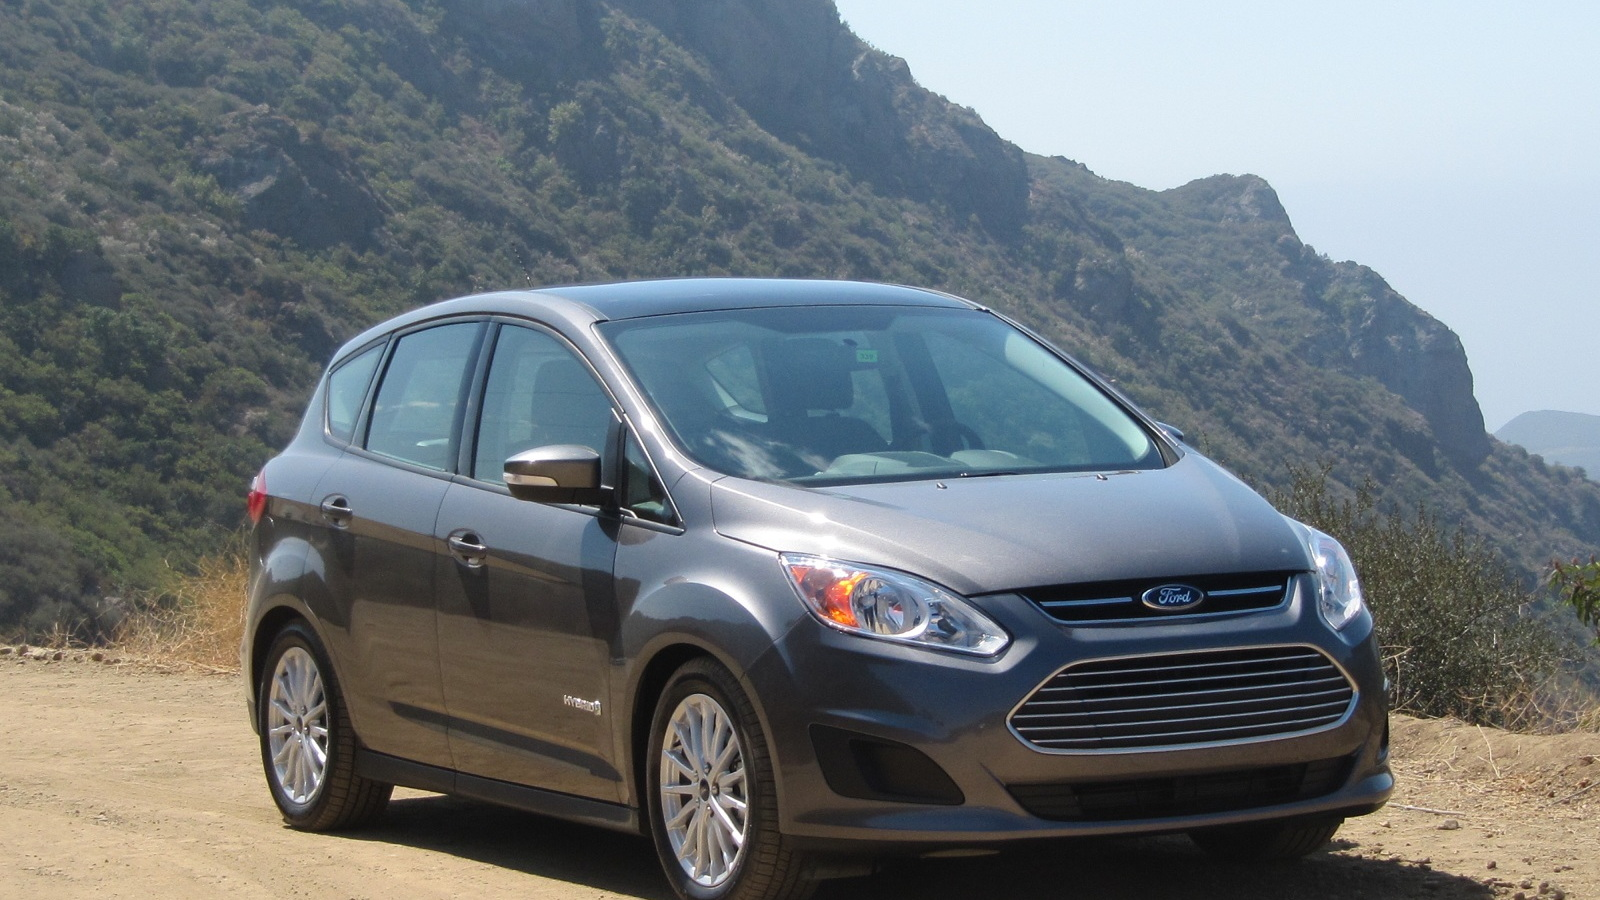 2013 Ford C-Max Hybrid, Los Angeles, August 2012